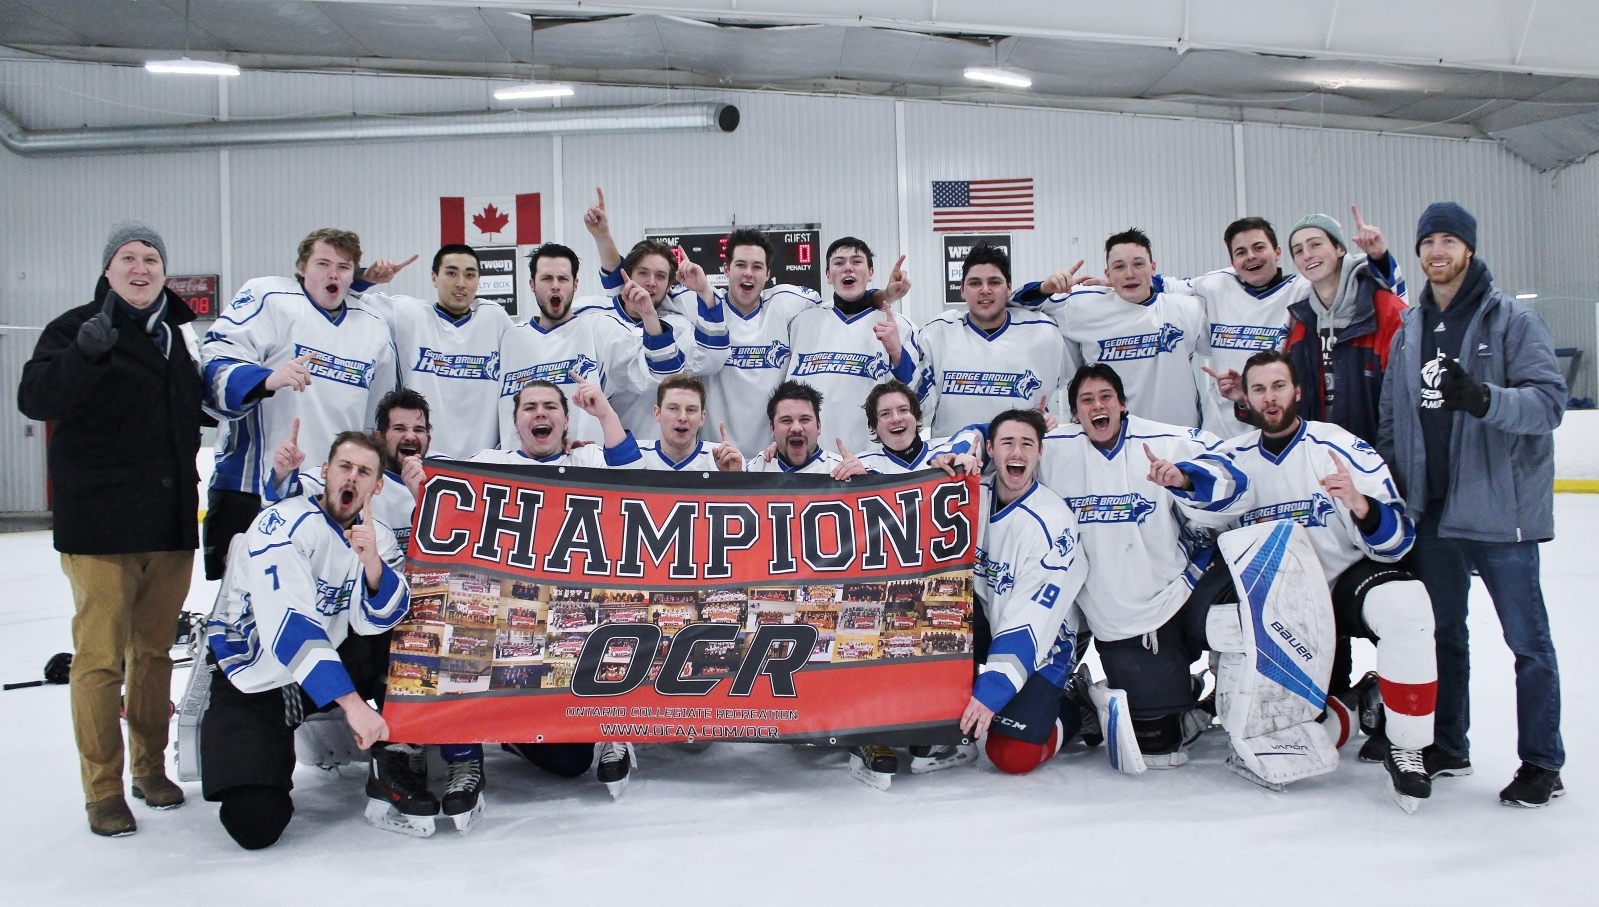 GEORGE BROWN COLLEGE MEN'S HOCKEY READY TO HOST HELDER CUP INVITATIONAL